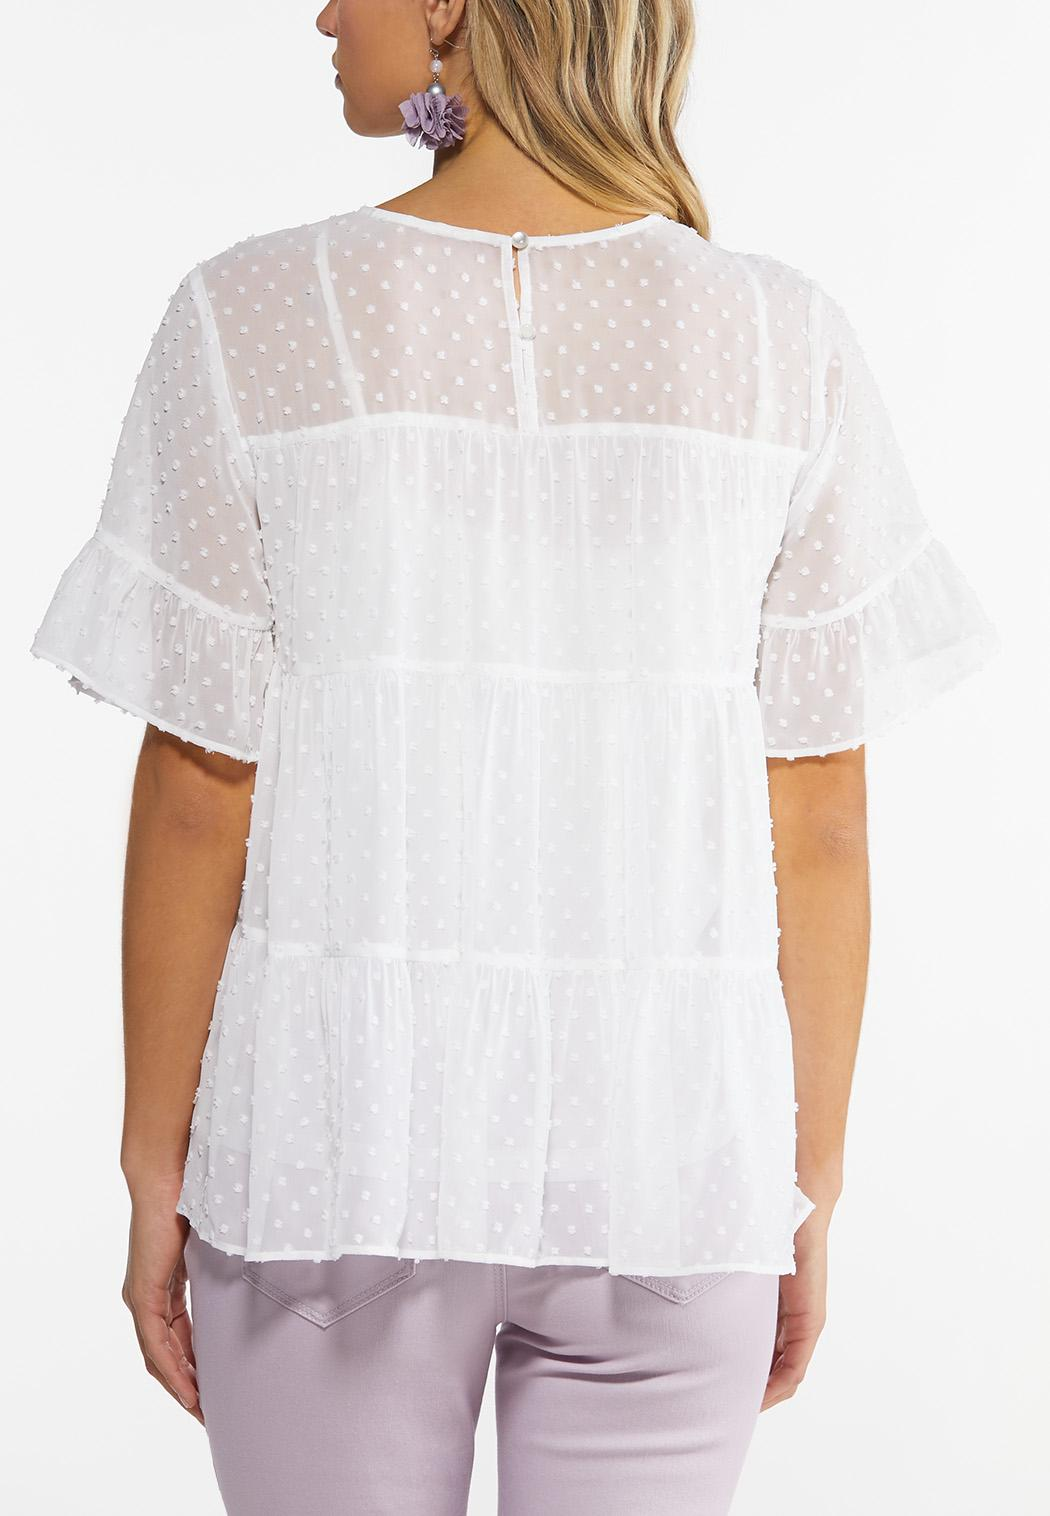 Tiered Babydoll Top (Item #44516568)